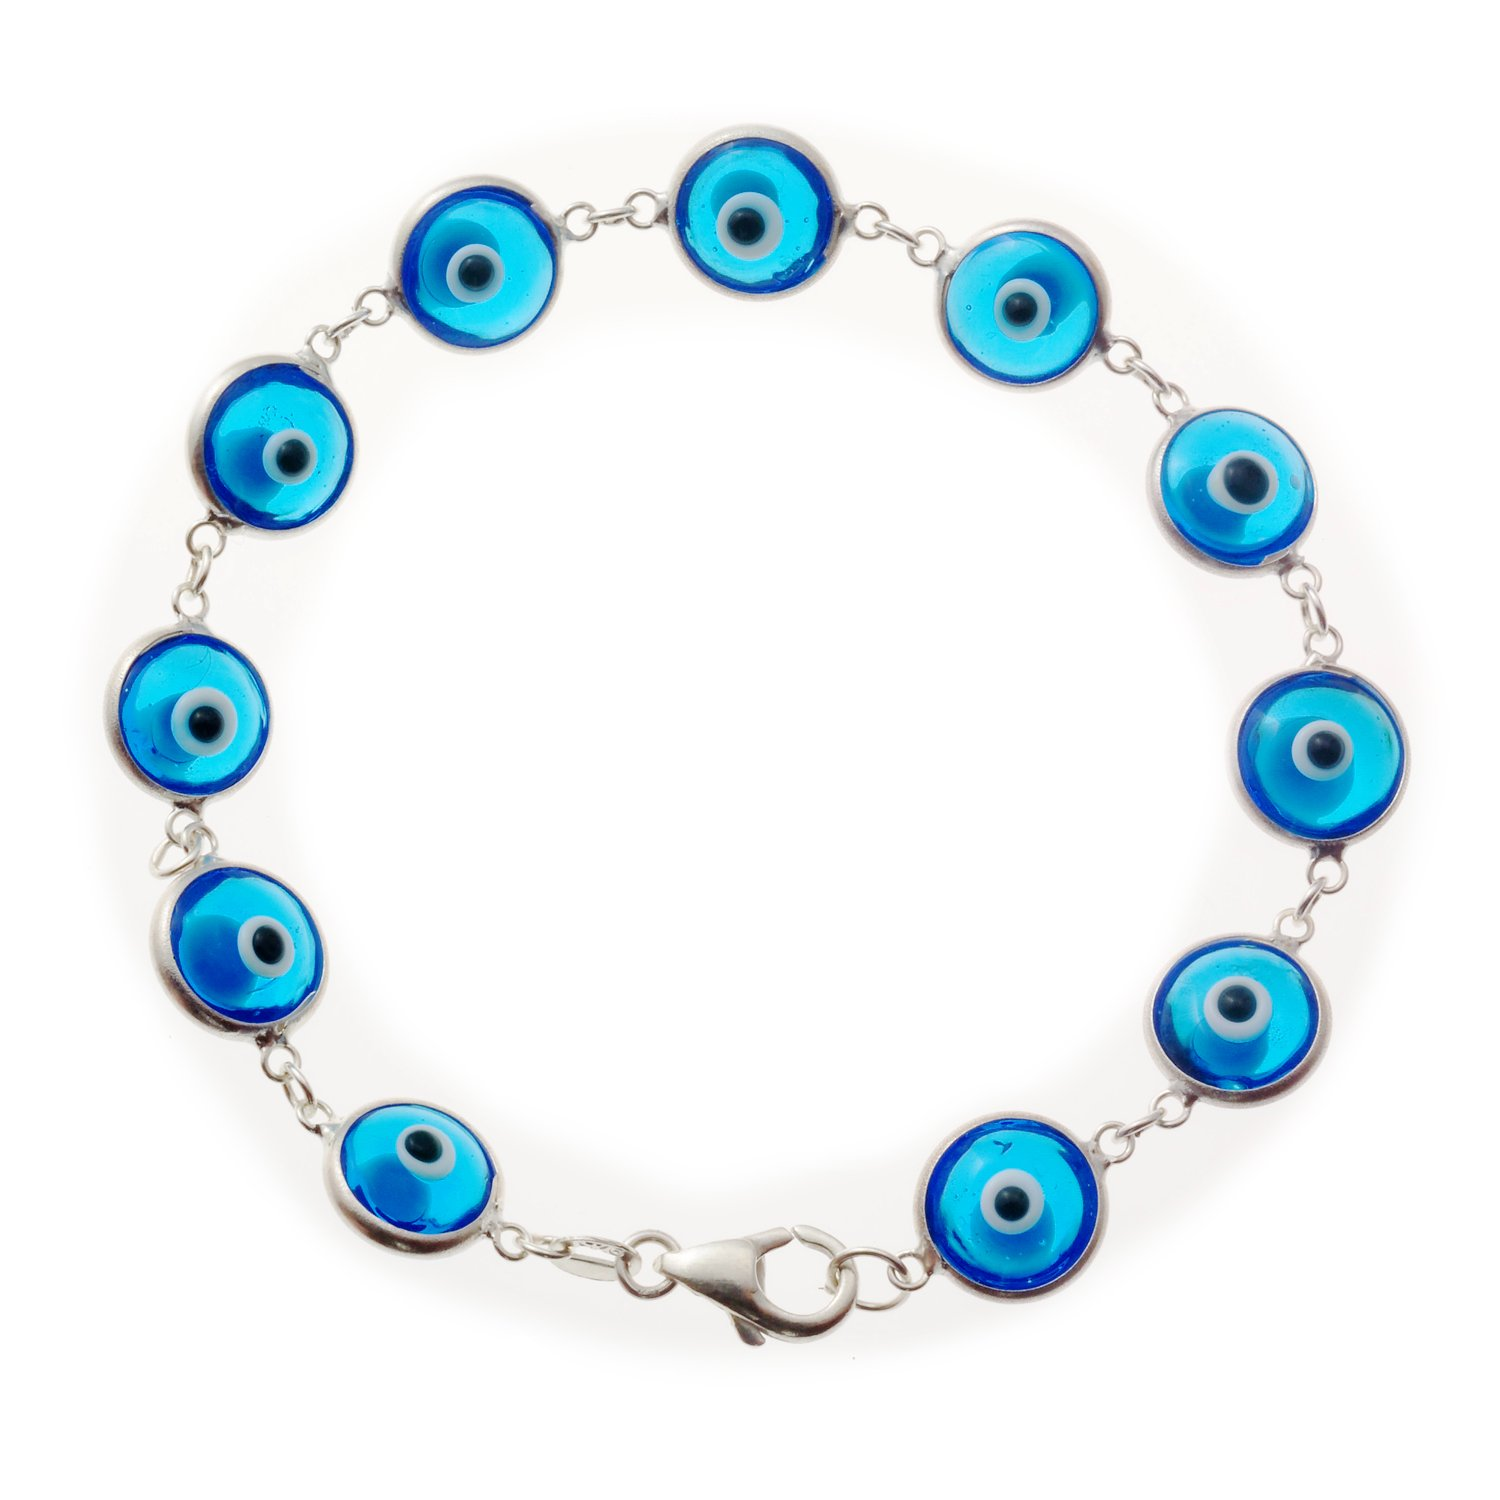 Love & Lucky Sterling Silver Evil Eye Bracelets, 7.5 inches (Translucent Turquoise)